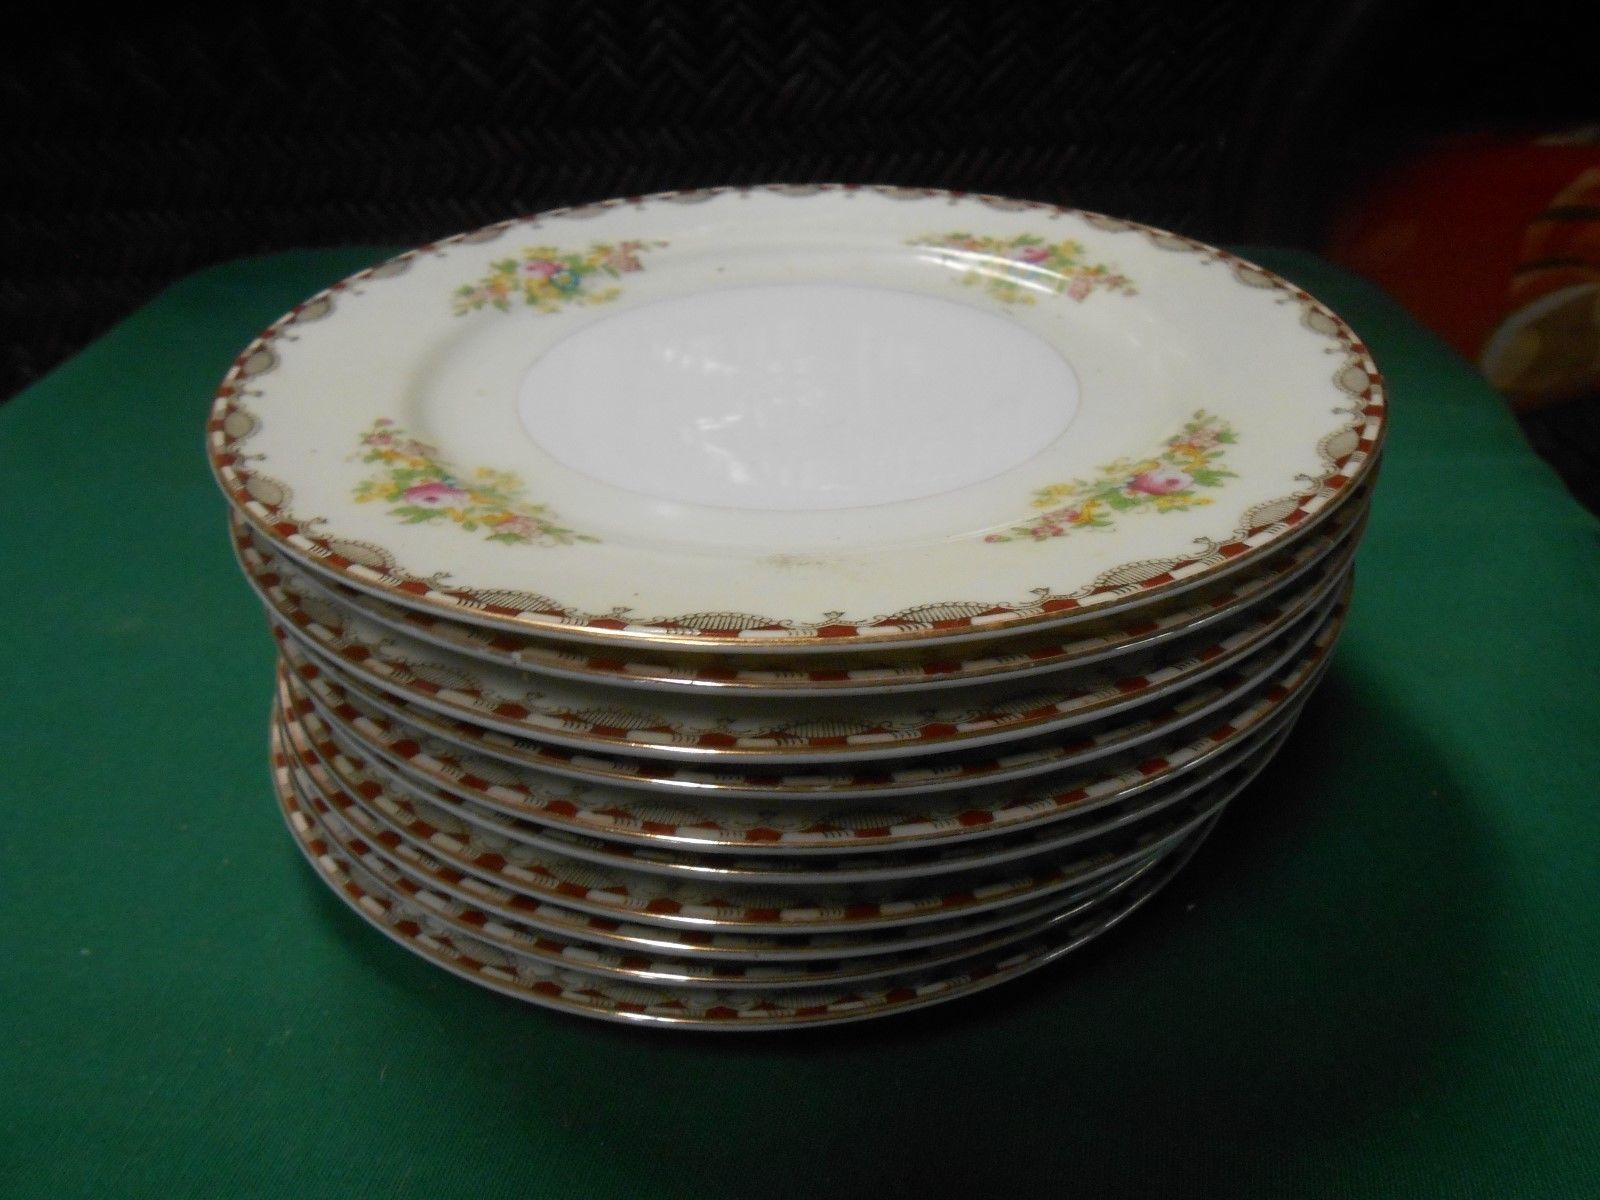 Primary image for Great MEITO China Handpainted ...Set of 9 BREAD / SALAD / DESSERT Plates